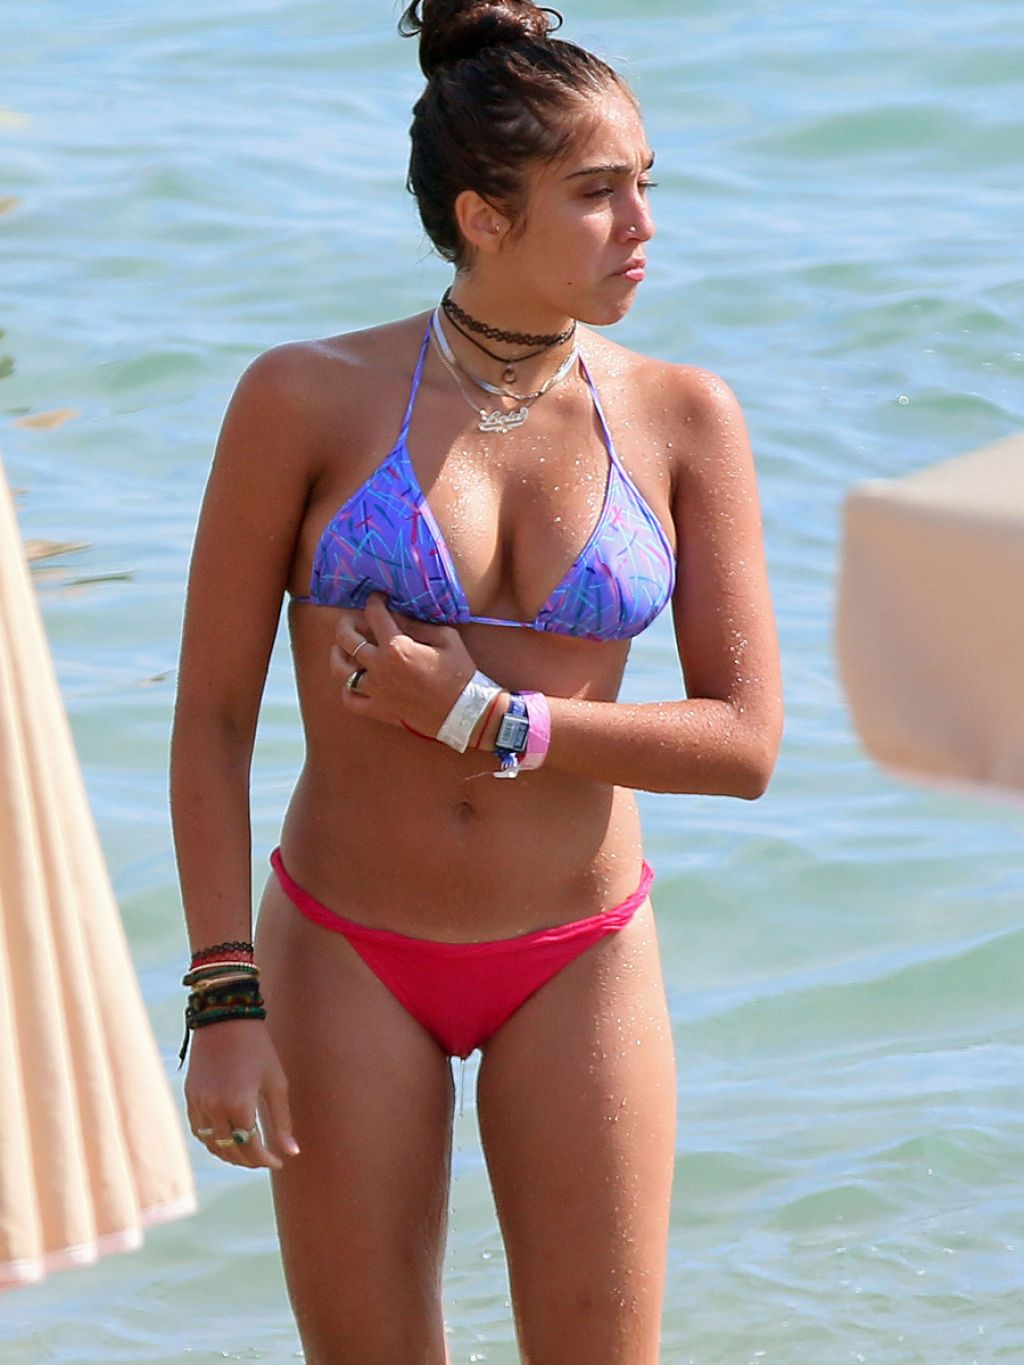 Lourdes Leon Hot In A Bikini At The Beach In Cannes